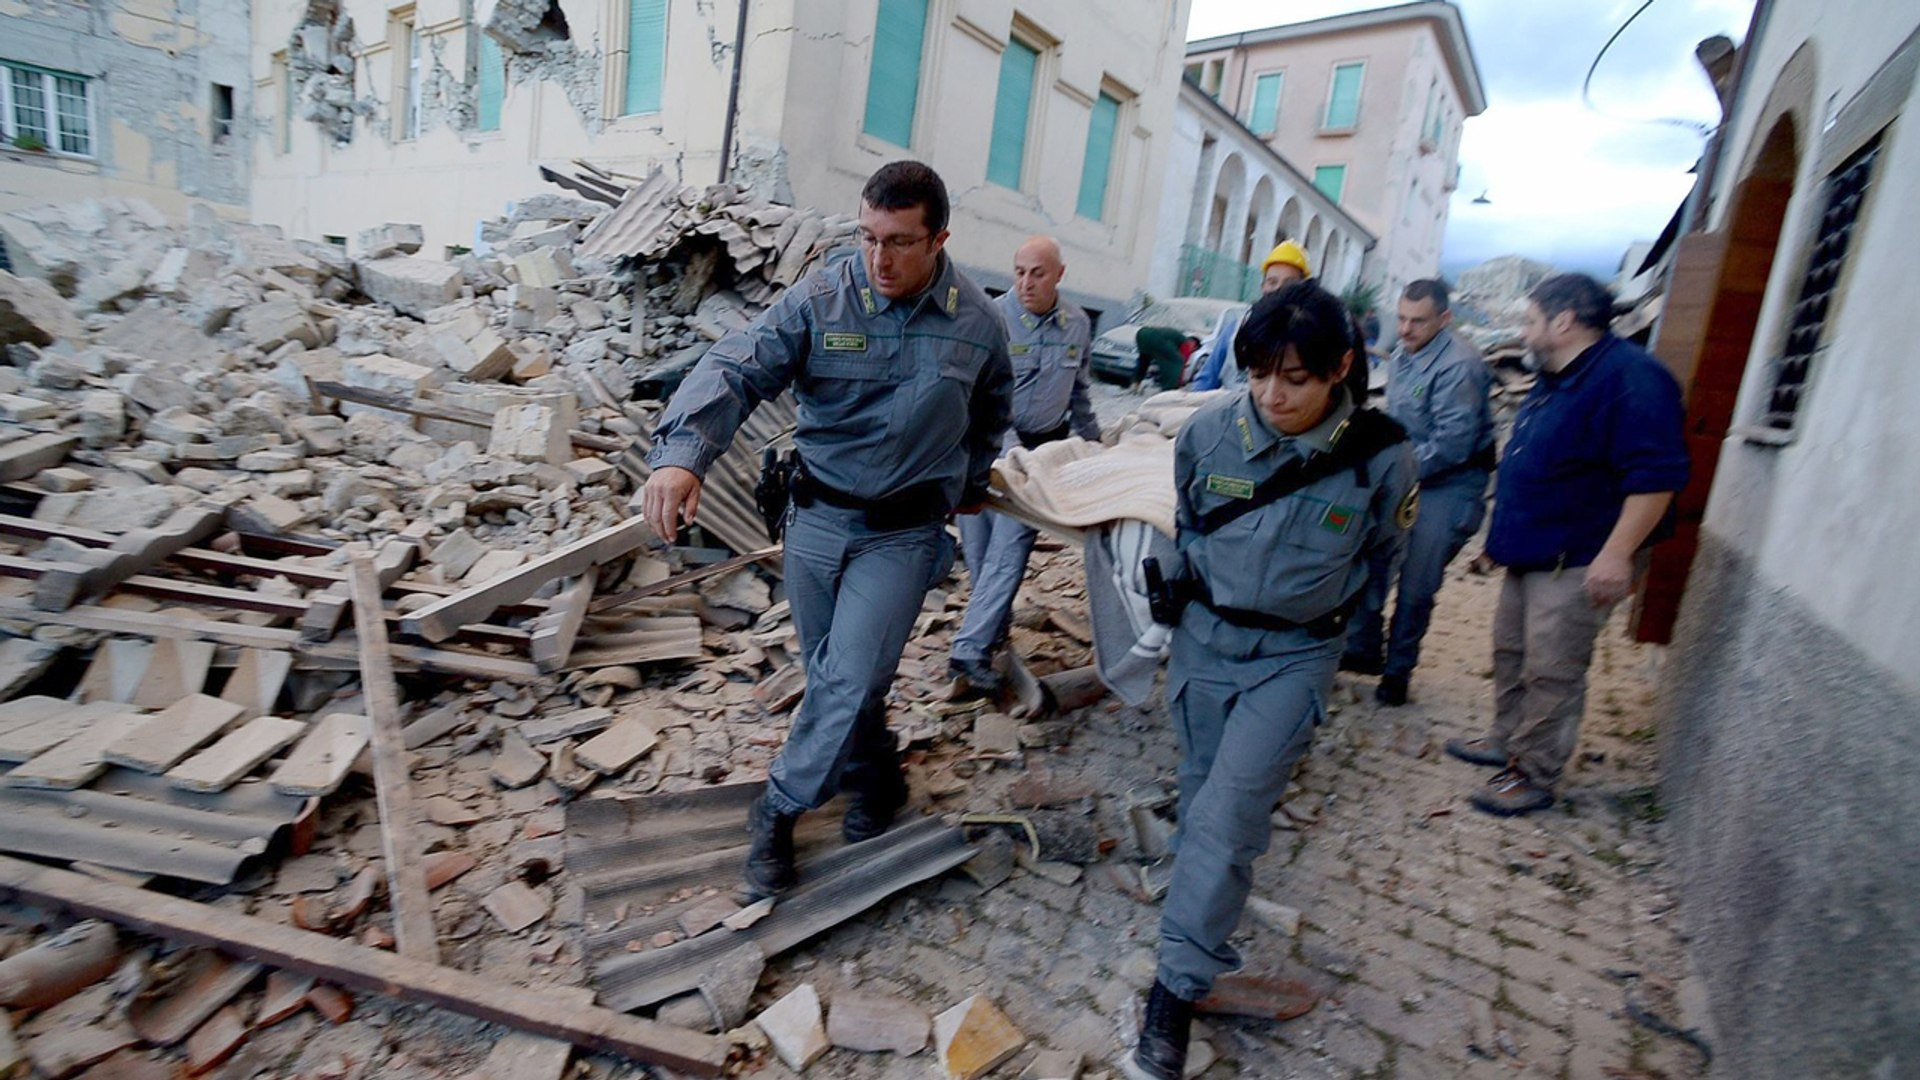 Italy Earthquakes : Two Earthquakes Shake Up Central Italy